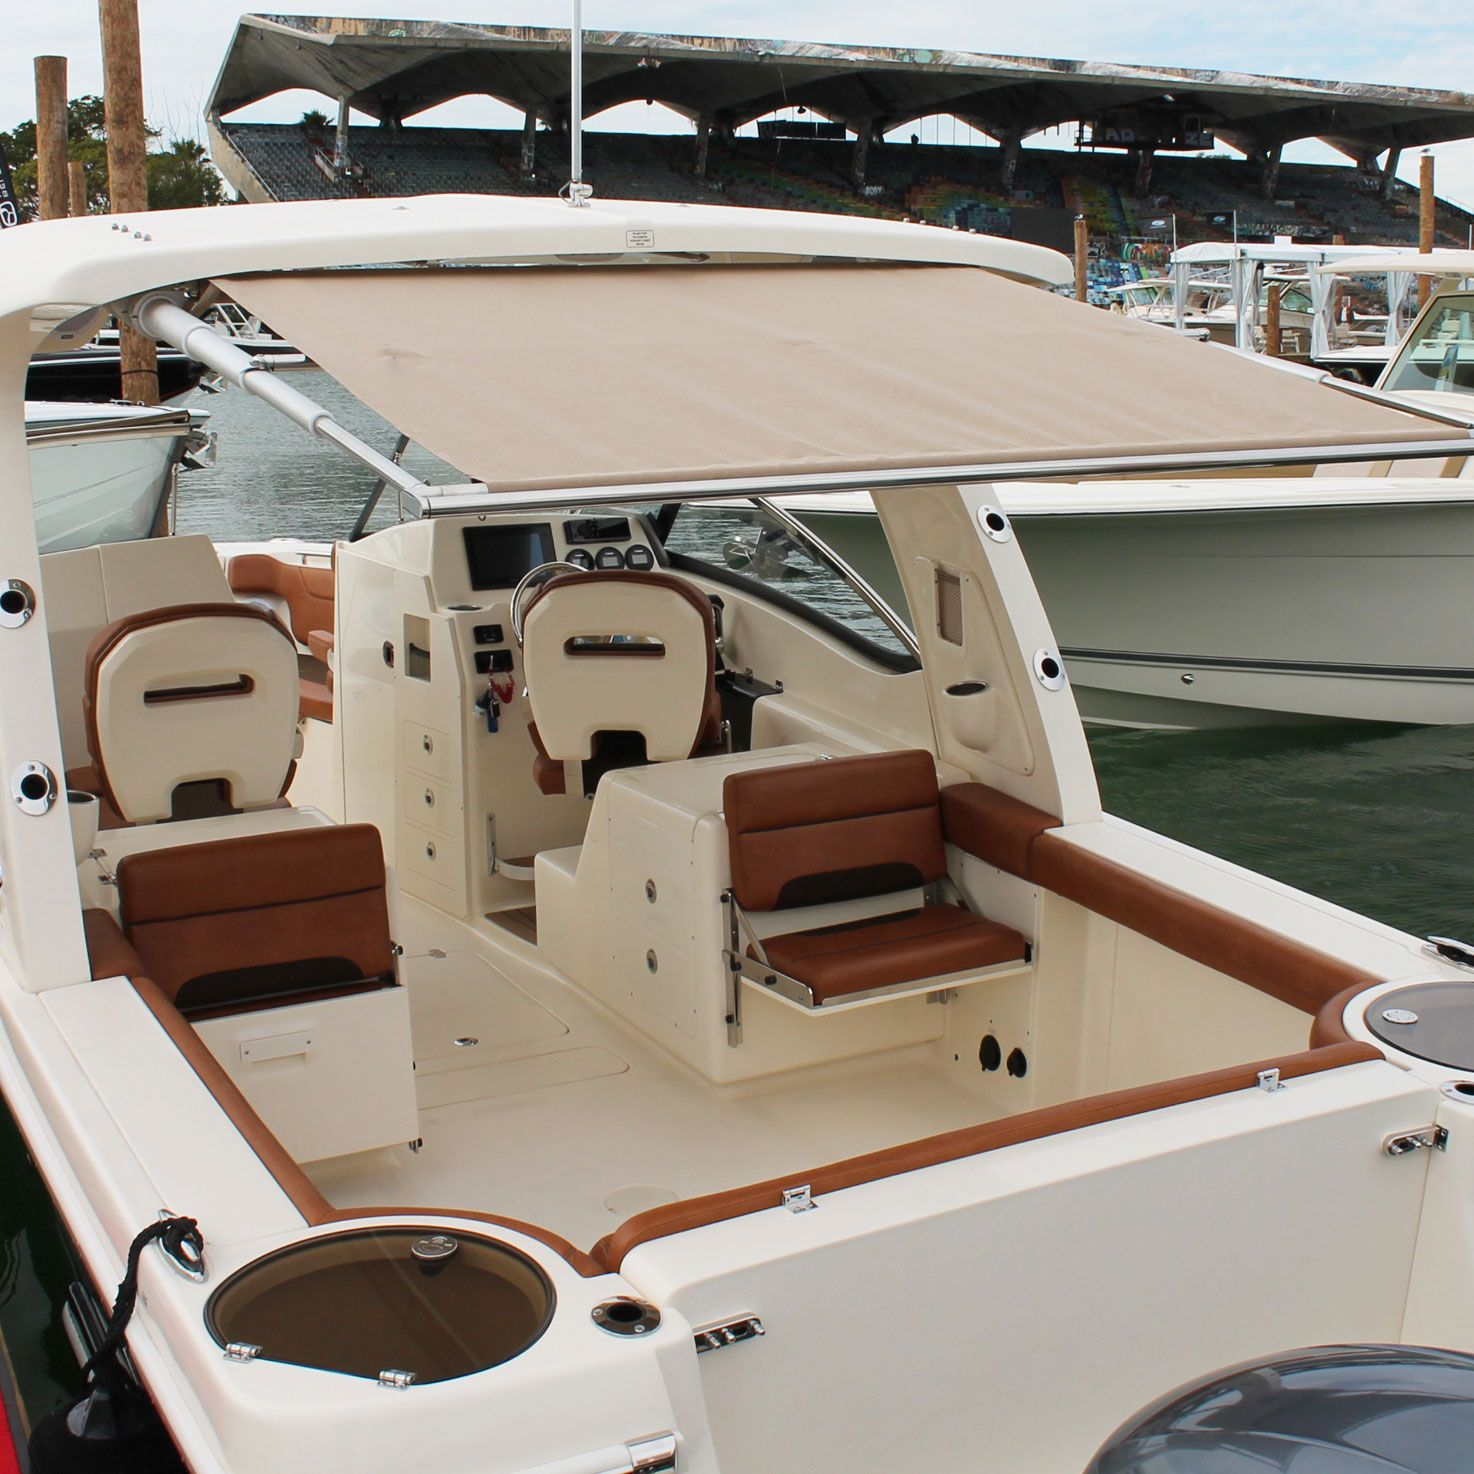 Rtx Pull Out Boat Shade Boat Boat Stuff Retractable Shade